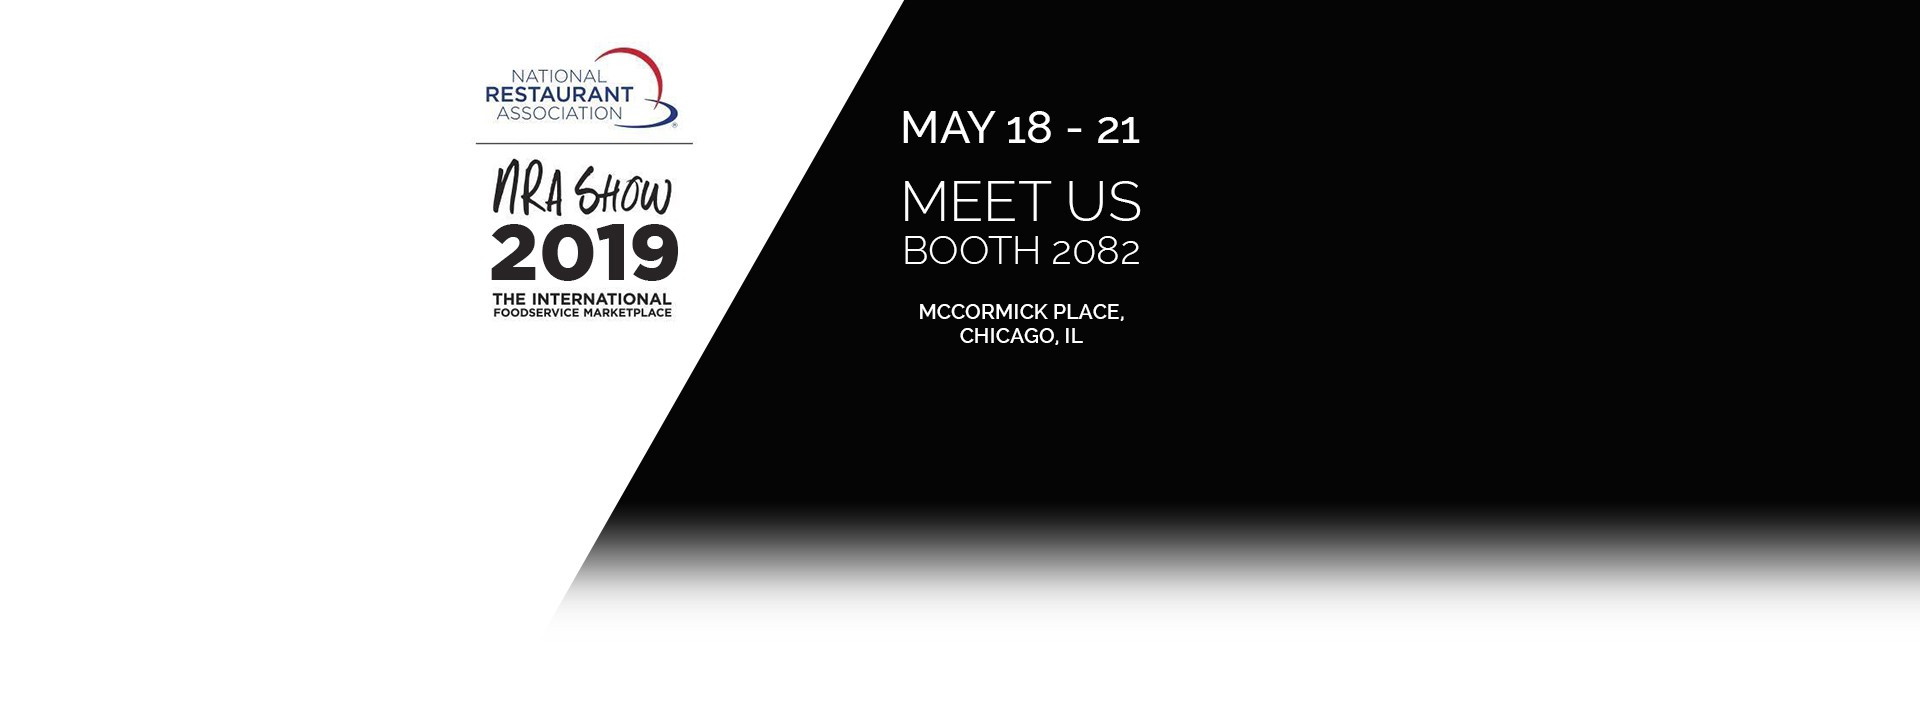 EuroCave sera présent au salon NRA 2019 (National Restaurant Association) à Chicago du 18-21 mai.